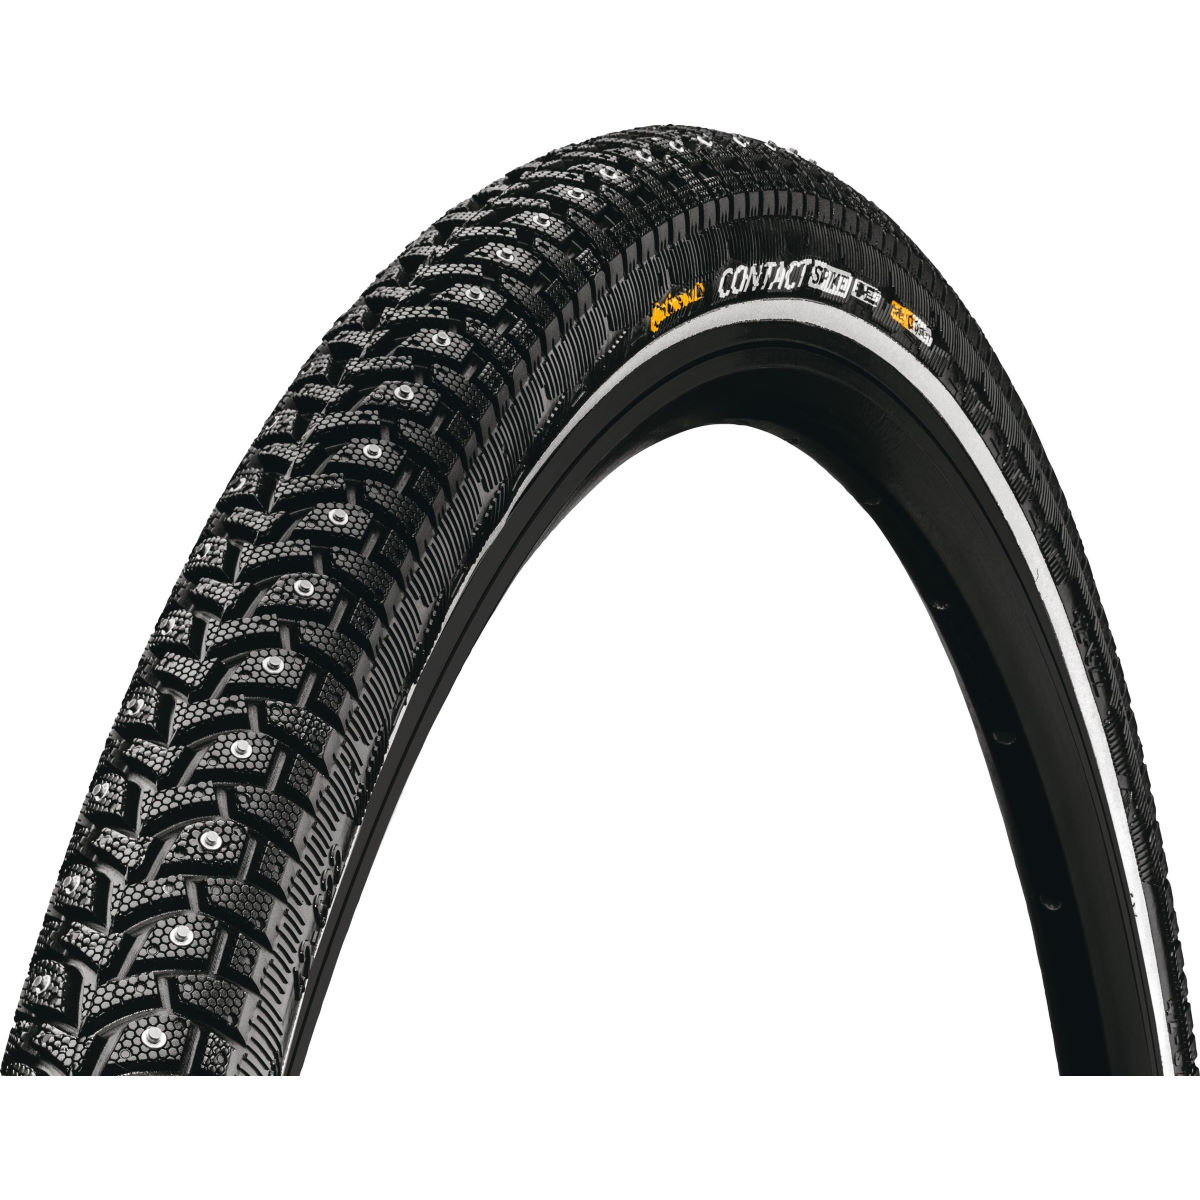 Continental Continental Contact Spike 240 Wire Bead Tyre   Tyres